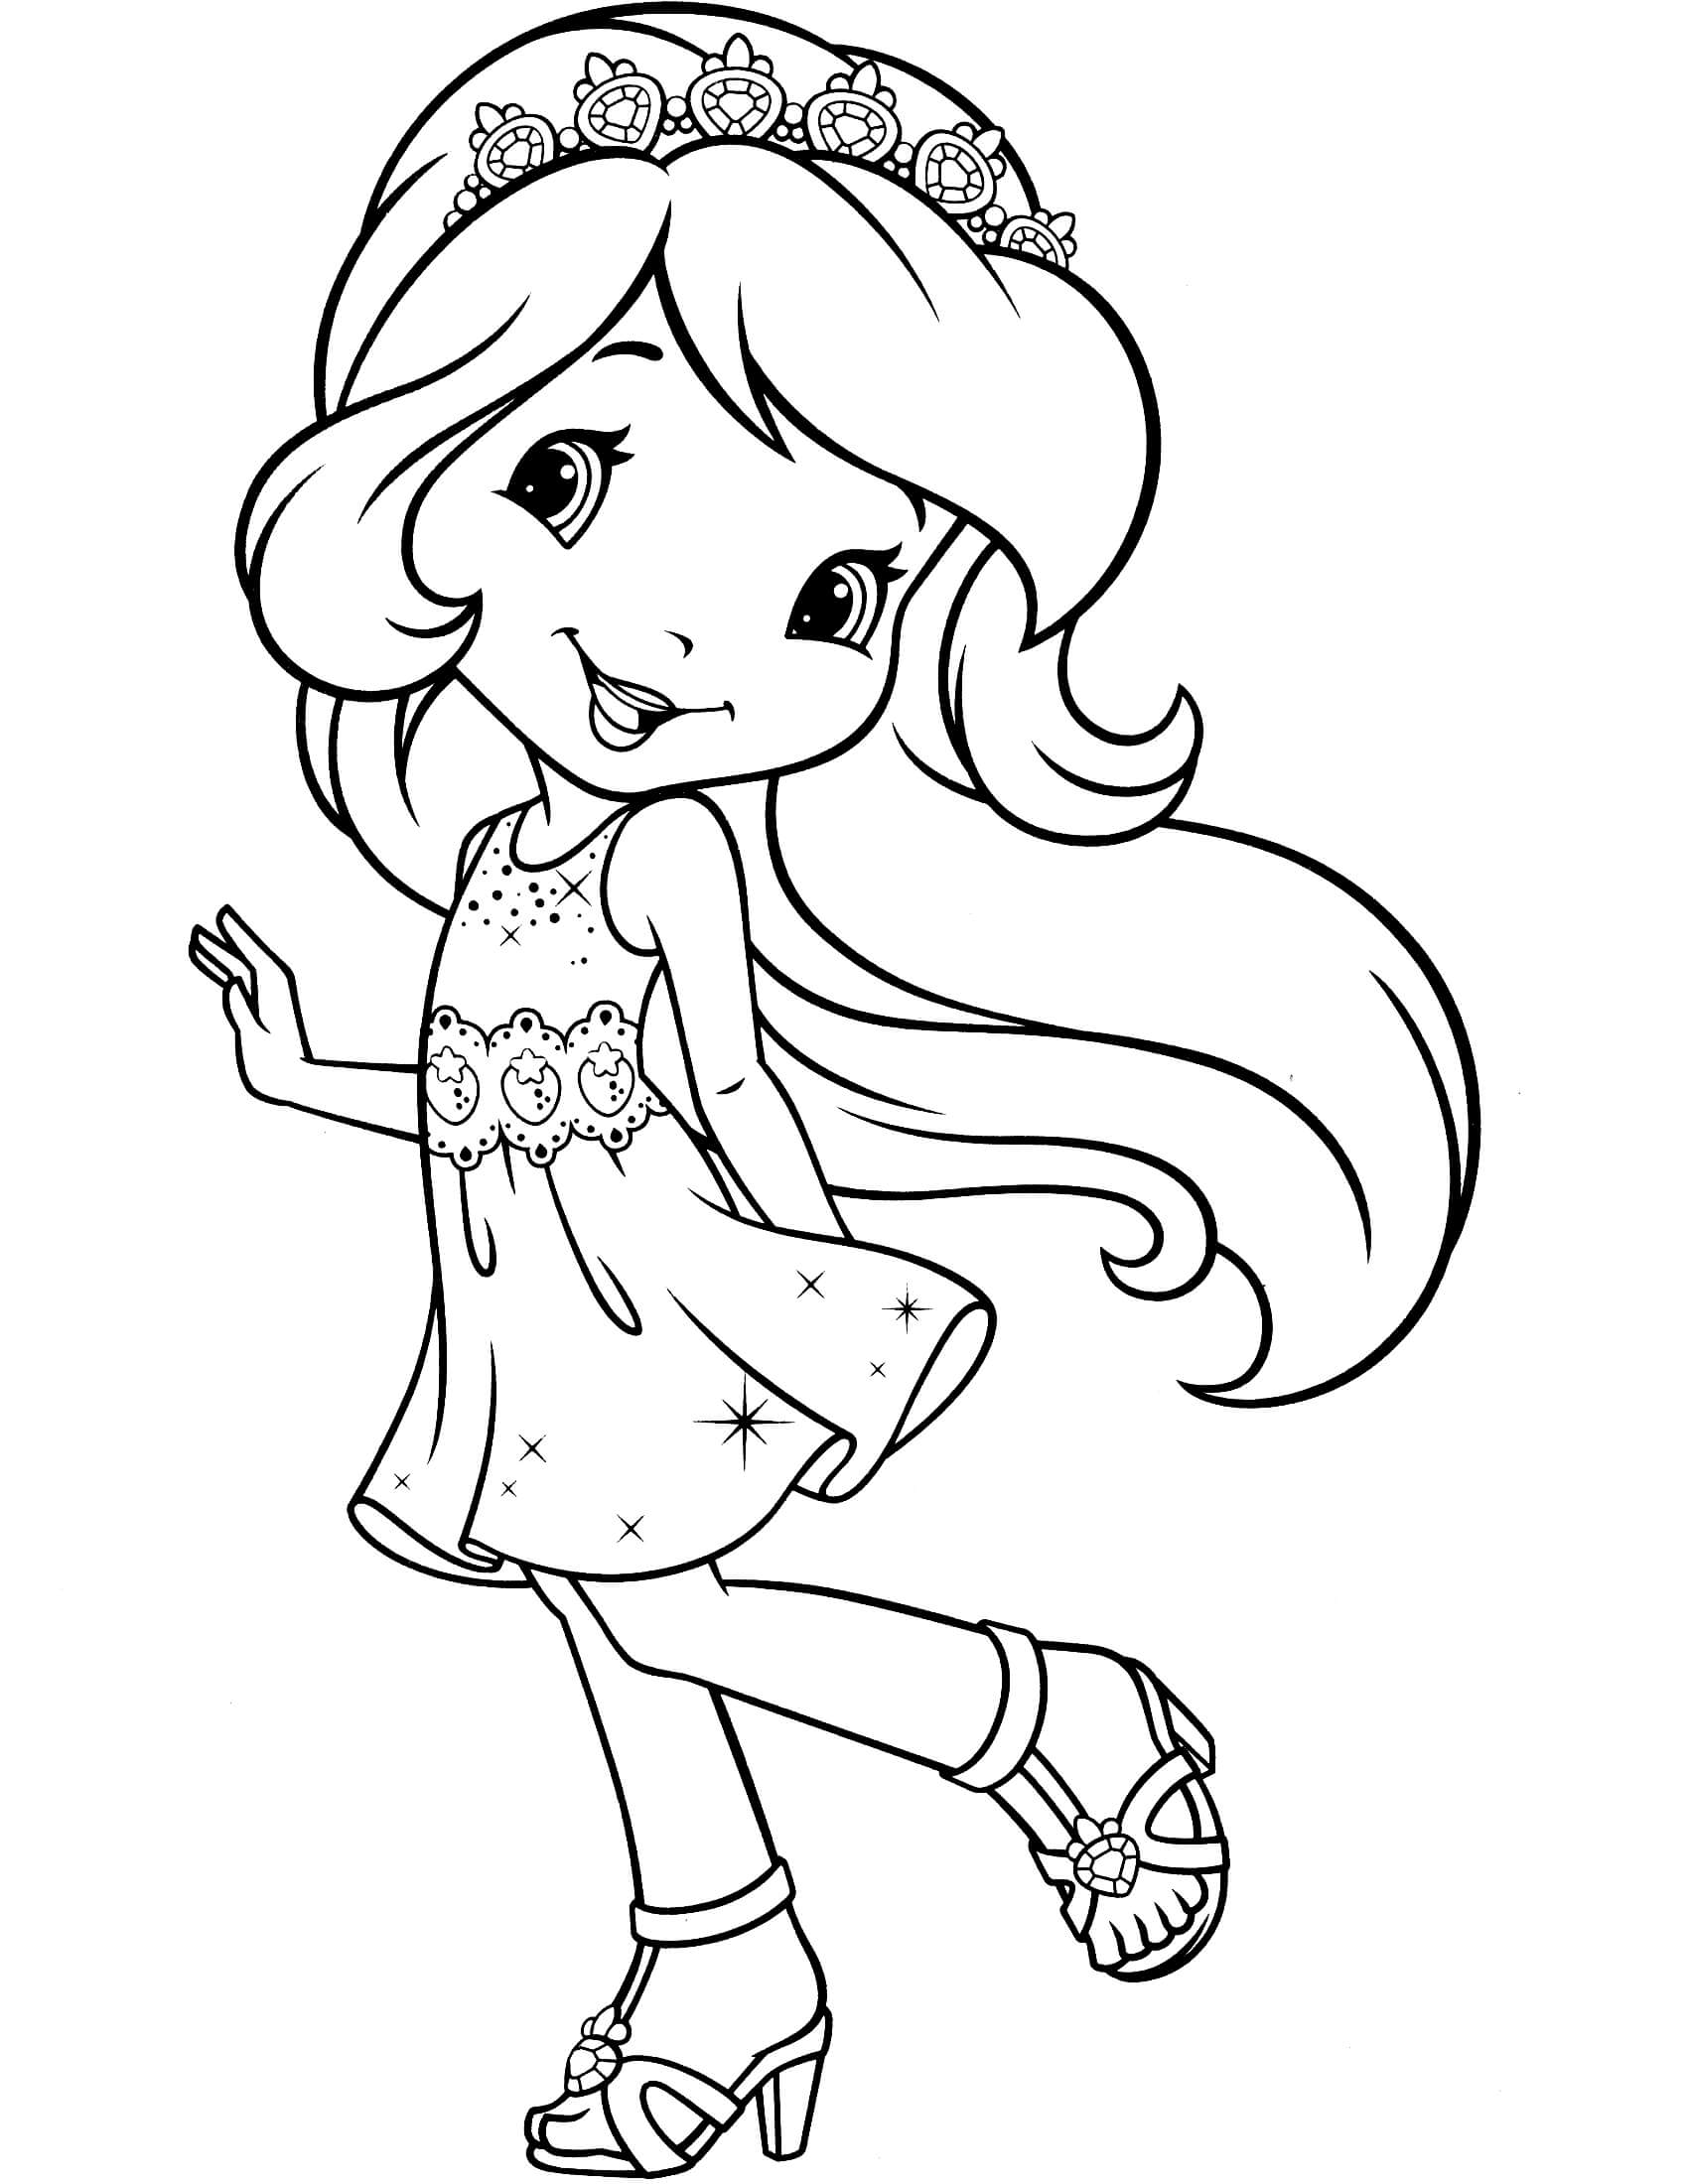 strawberry shortcake pictures to color strawberry shortcake 4 coloringcolorcom pictures color strawberry to shortcake